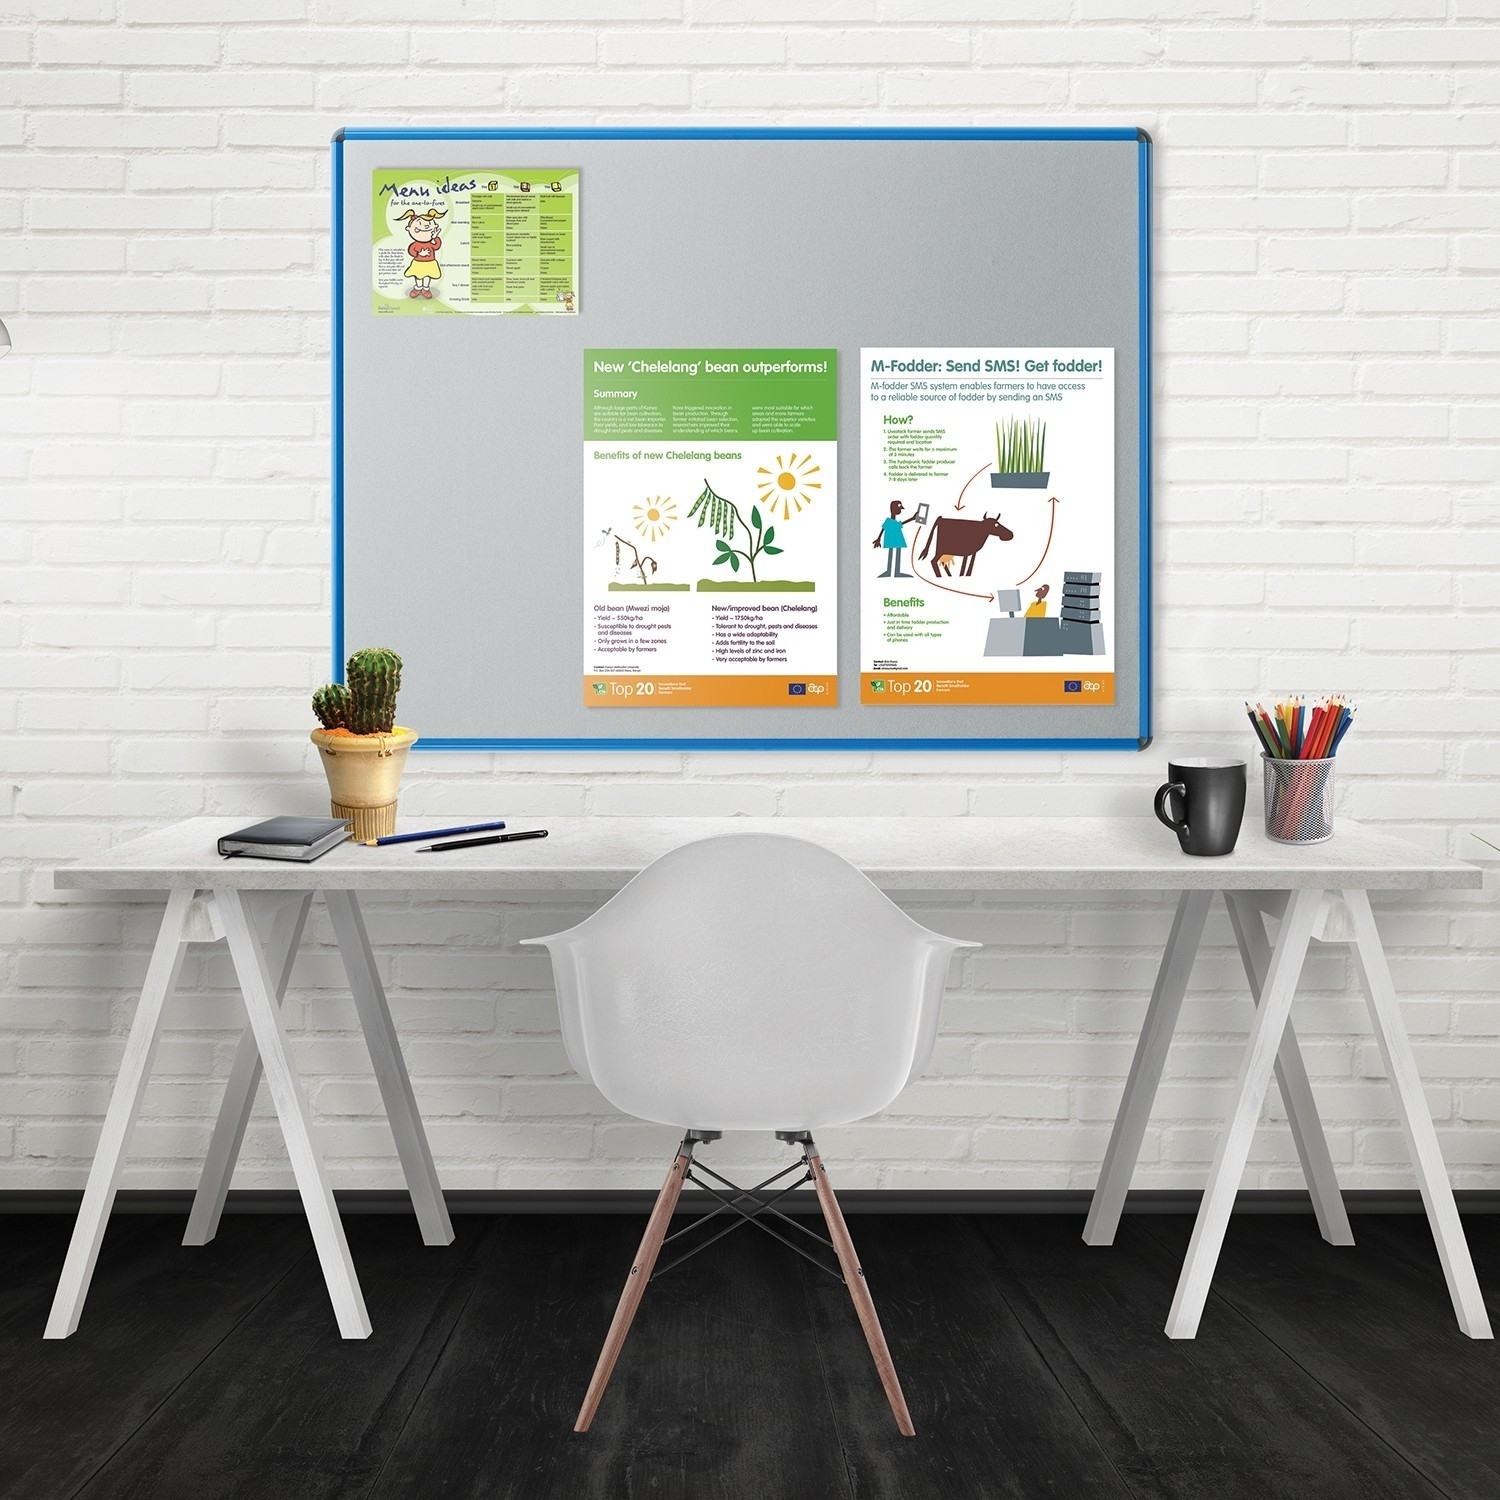 Shield design noticeboard with office desk and chair